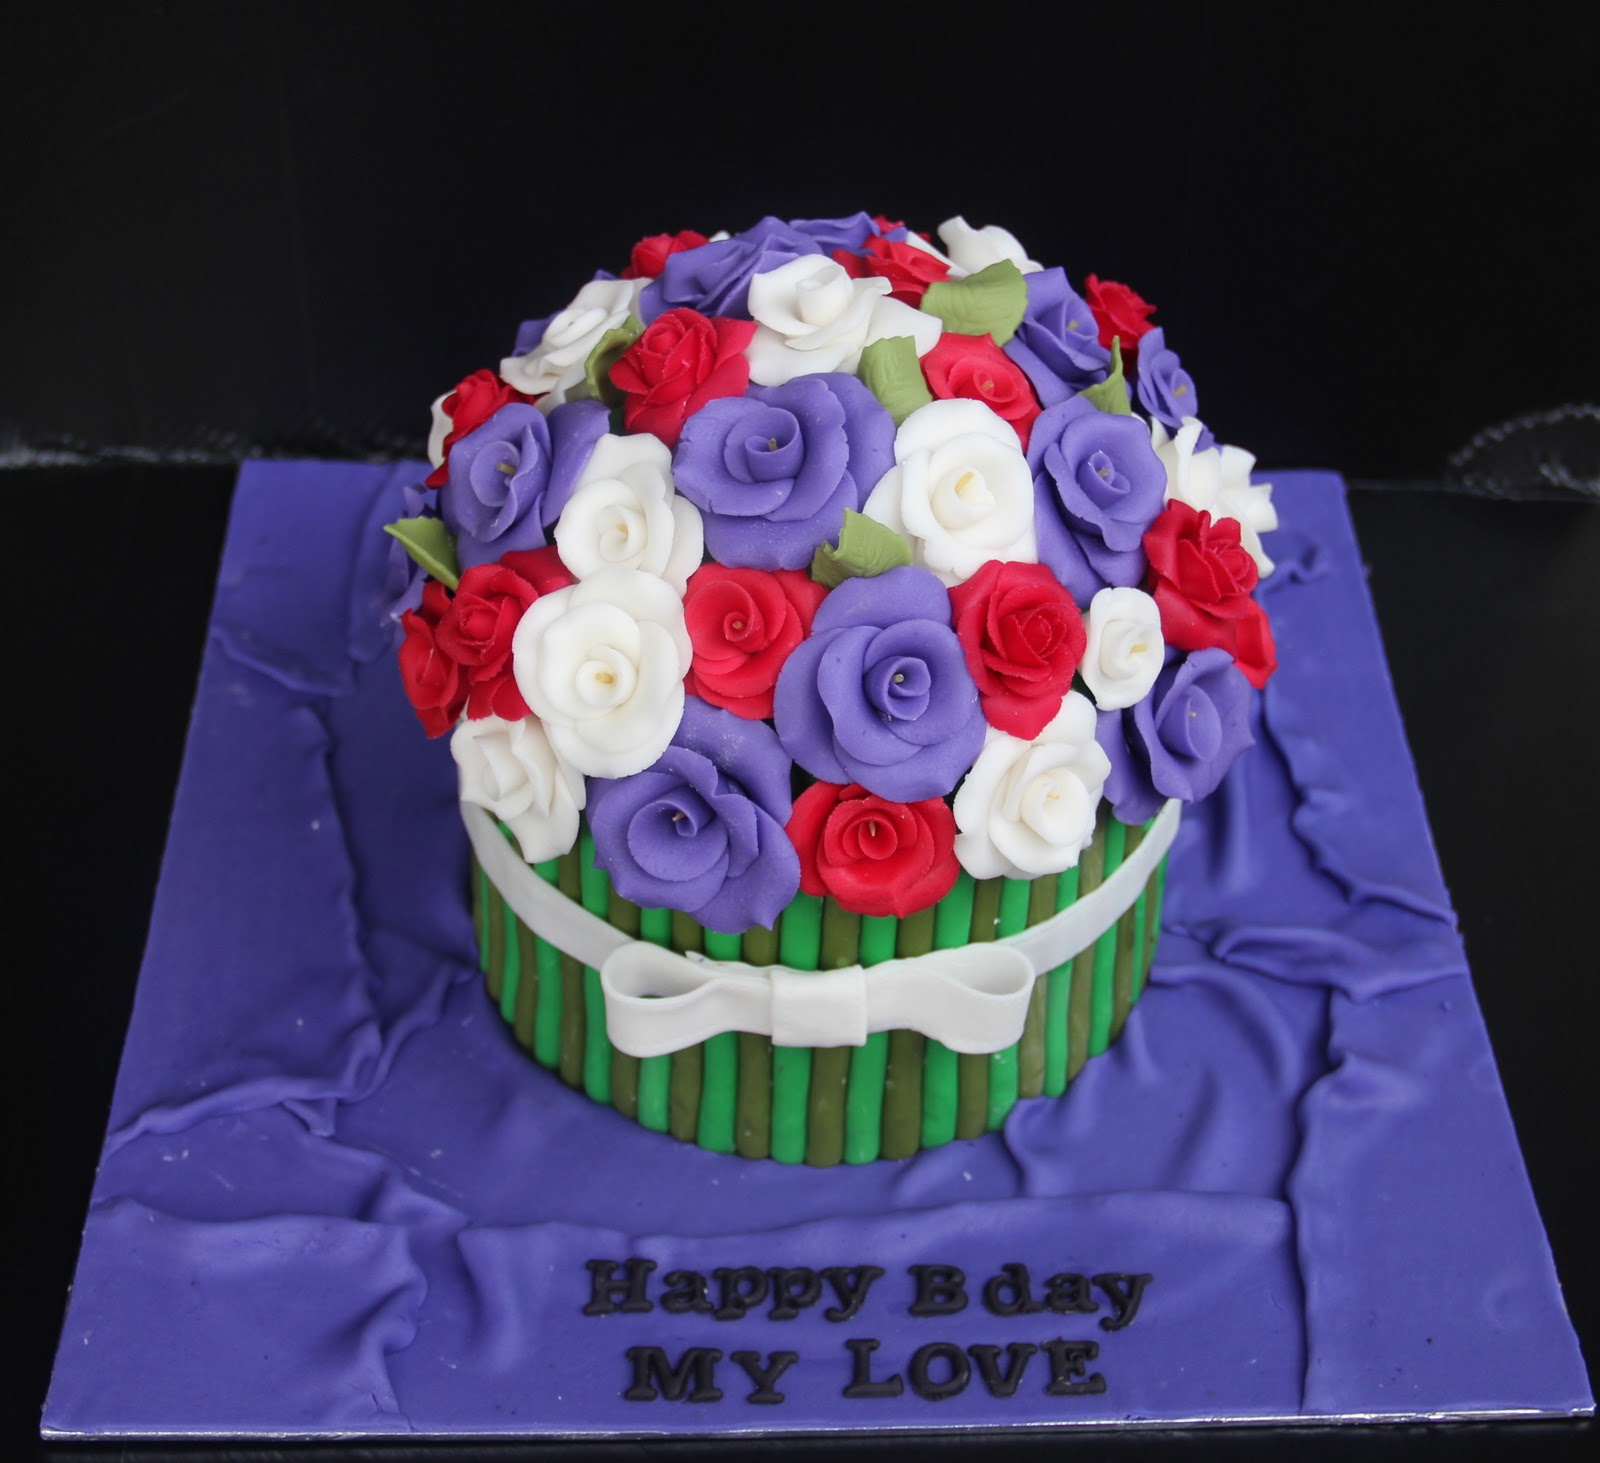 Emas creation flower bouquet cake all the decoration are hand made and made from sugar paste izmirmasajfo